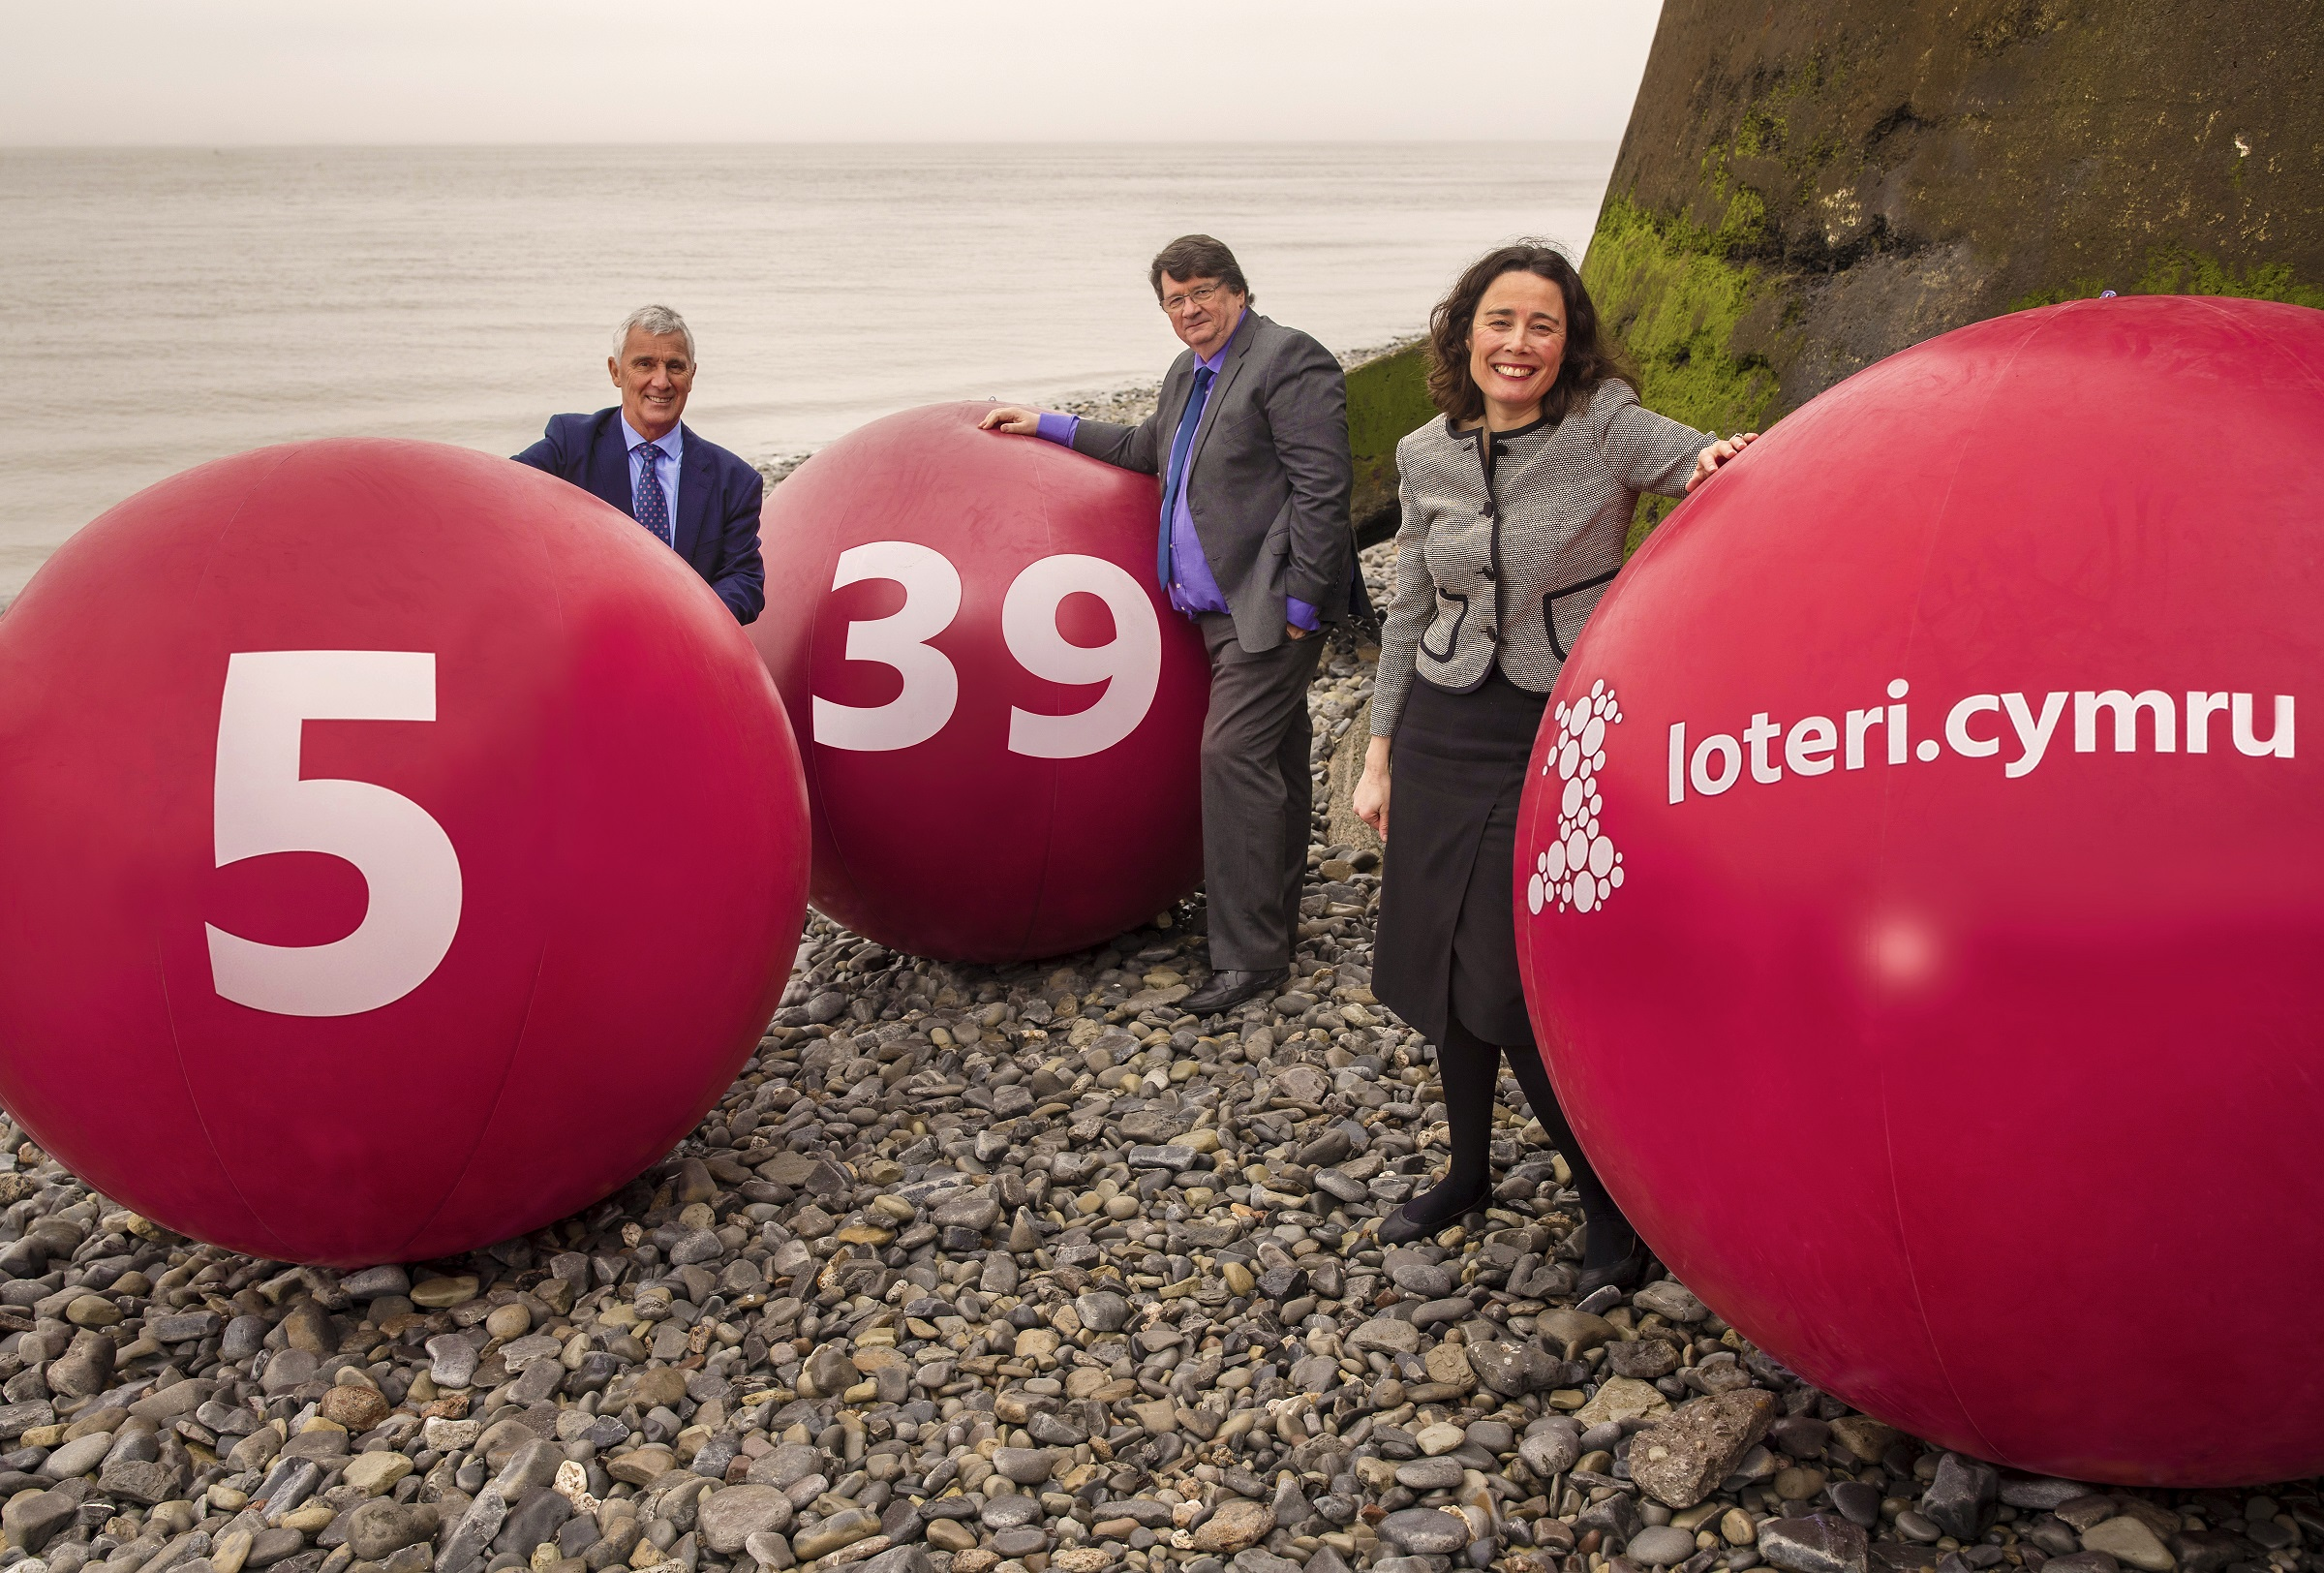 Wales' own lottery to launch with £25k jackpot